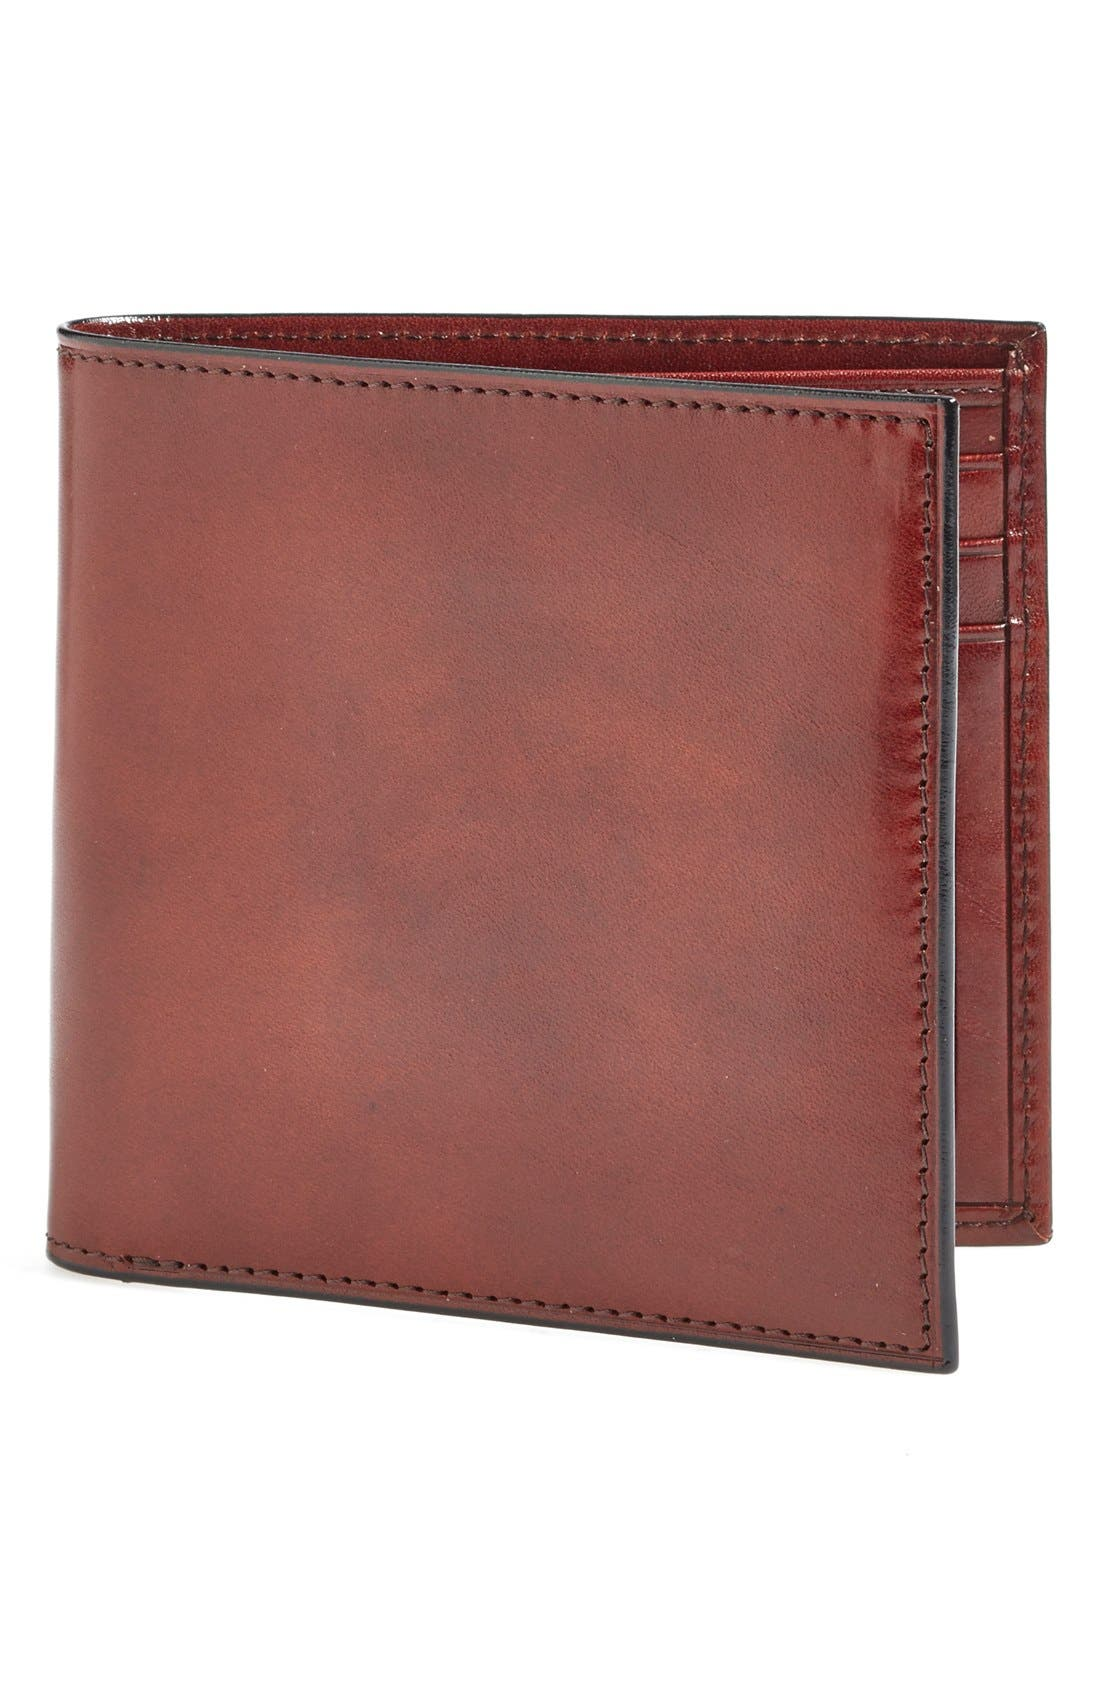 'Old Leather' Bifold Wallet,                         Main,                         color, Dark Brown